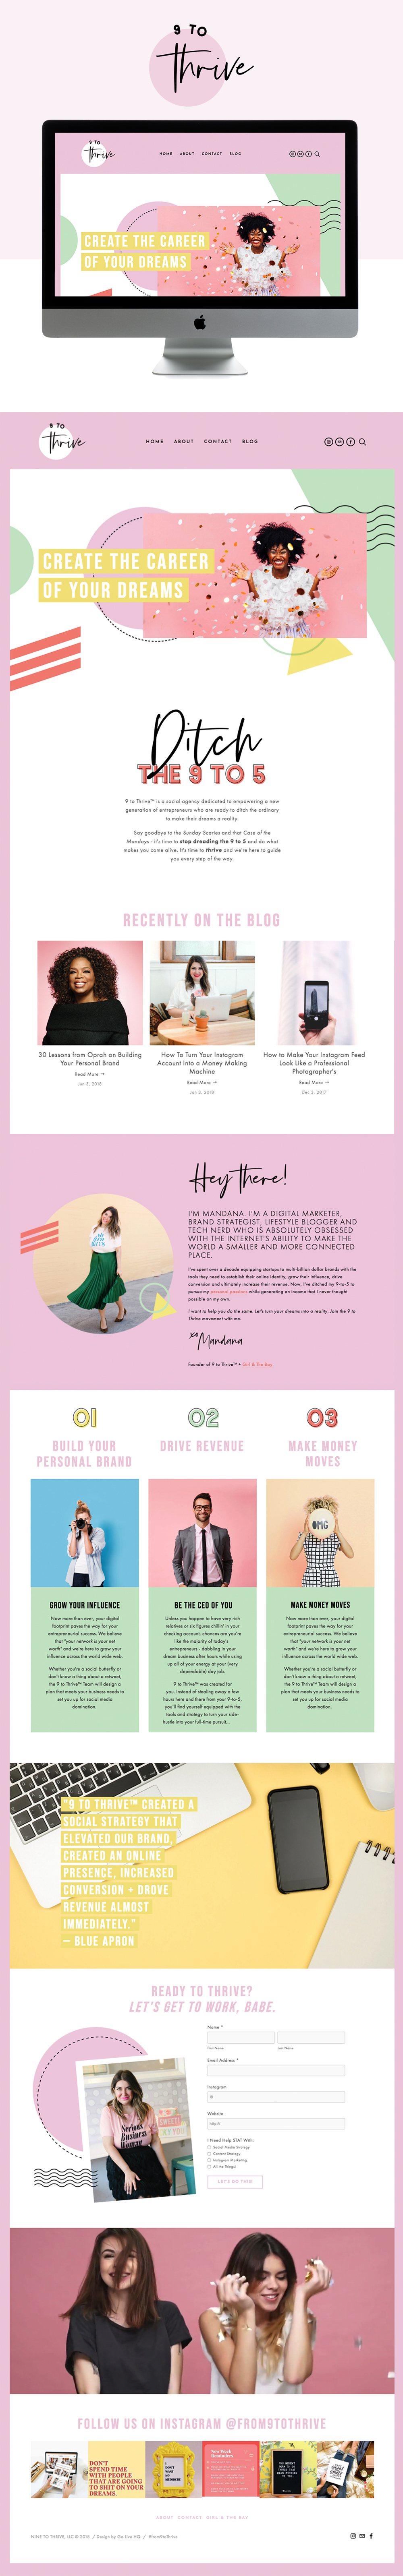 Fun and Colorful Website Design for Social Agency | Design by Go Live HQ